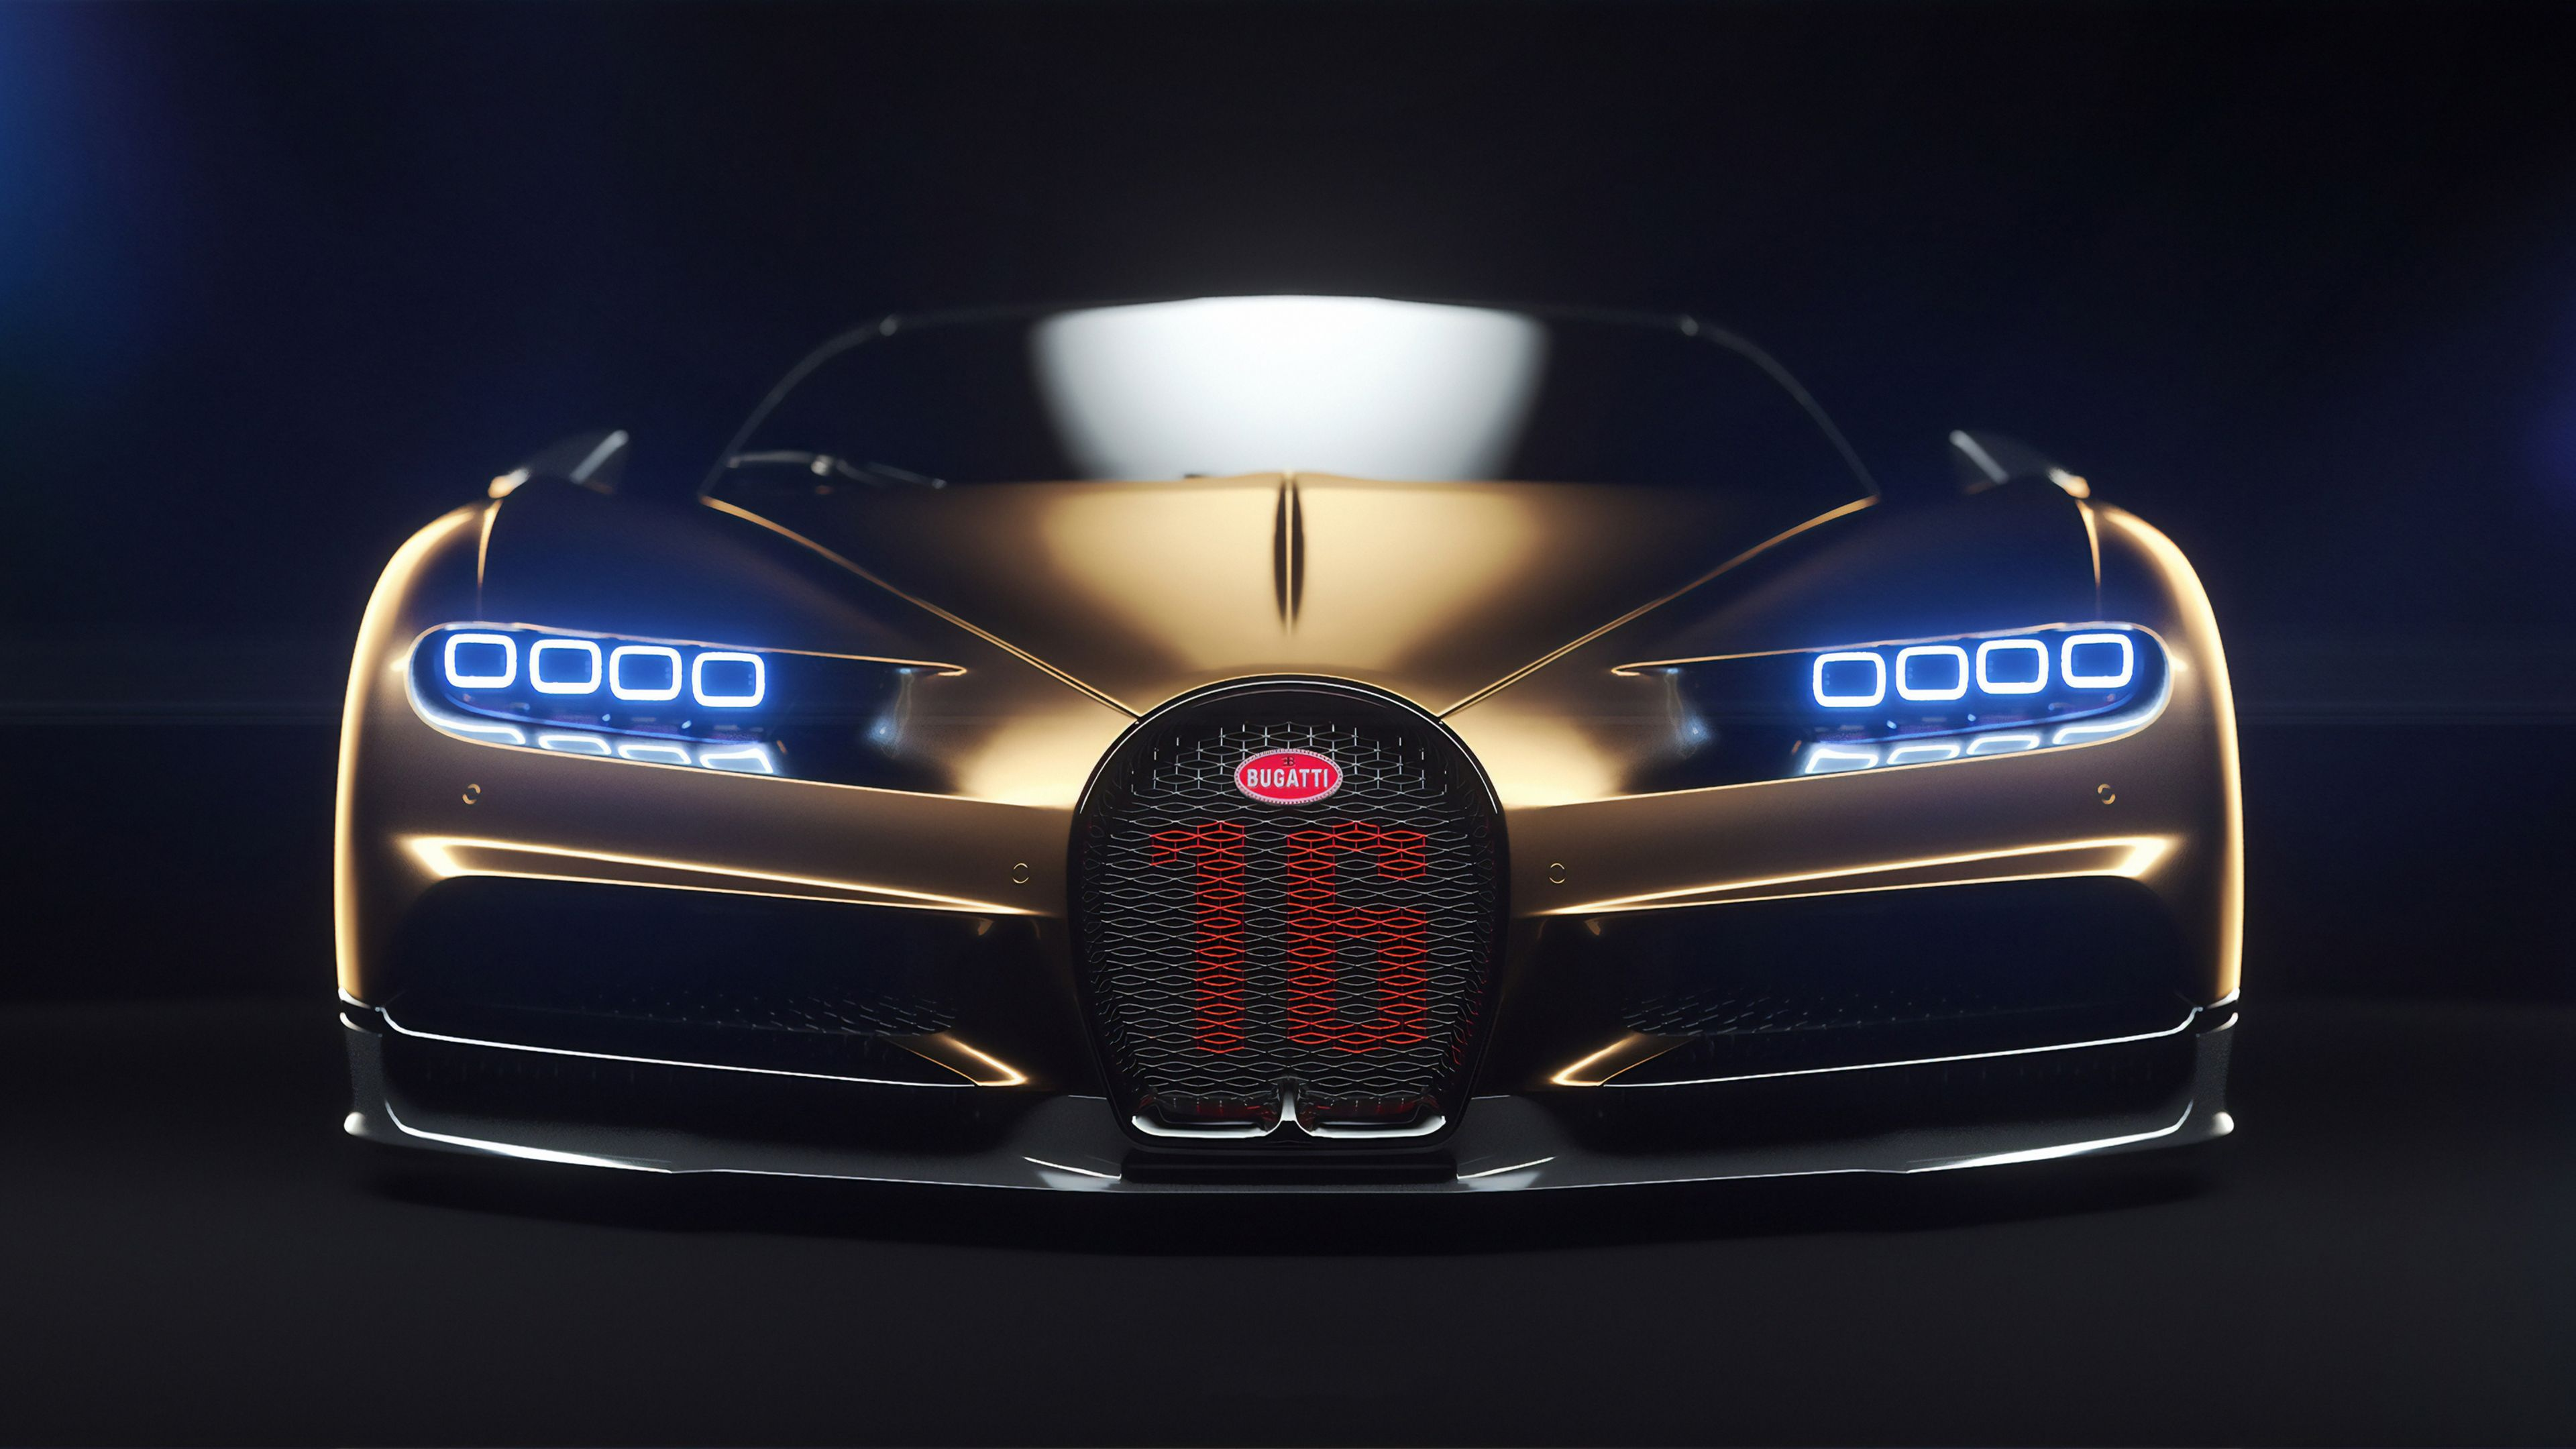 Bugatti Chiron Front 4k Hd Wallpapers Cars Wallpapers Bugatti Chiron Wallpapers 4k Wallpapers Bugatti Chiron Car Wallpapers Bugatti